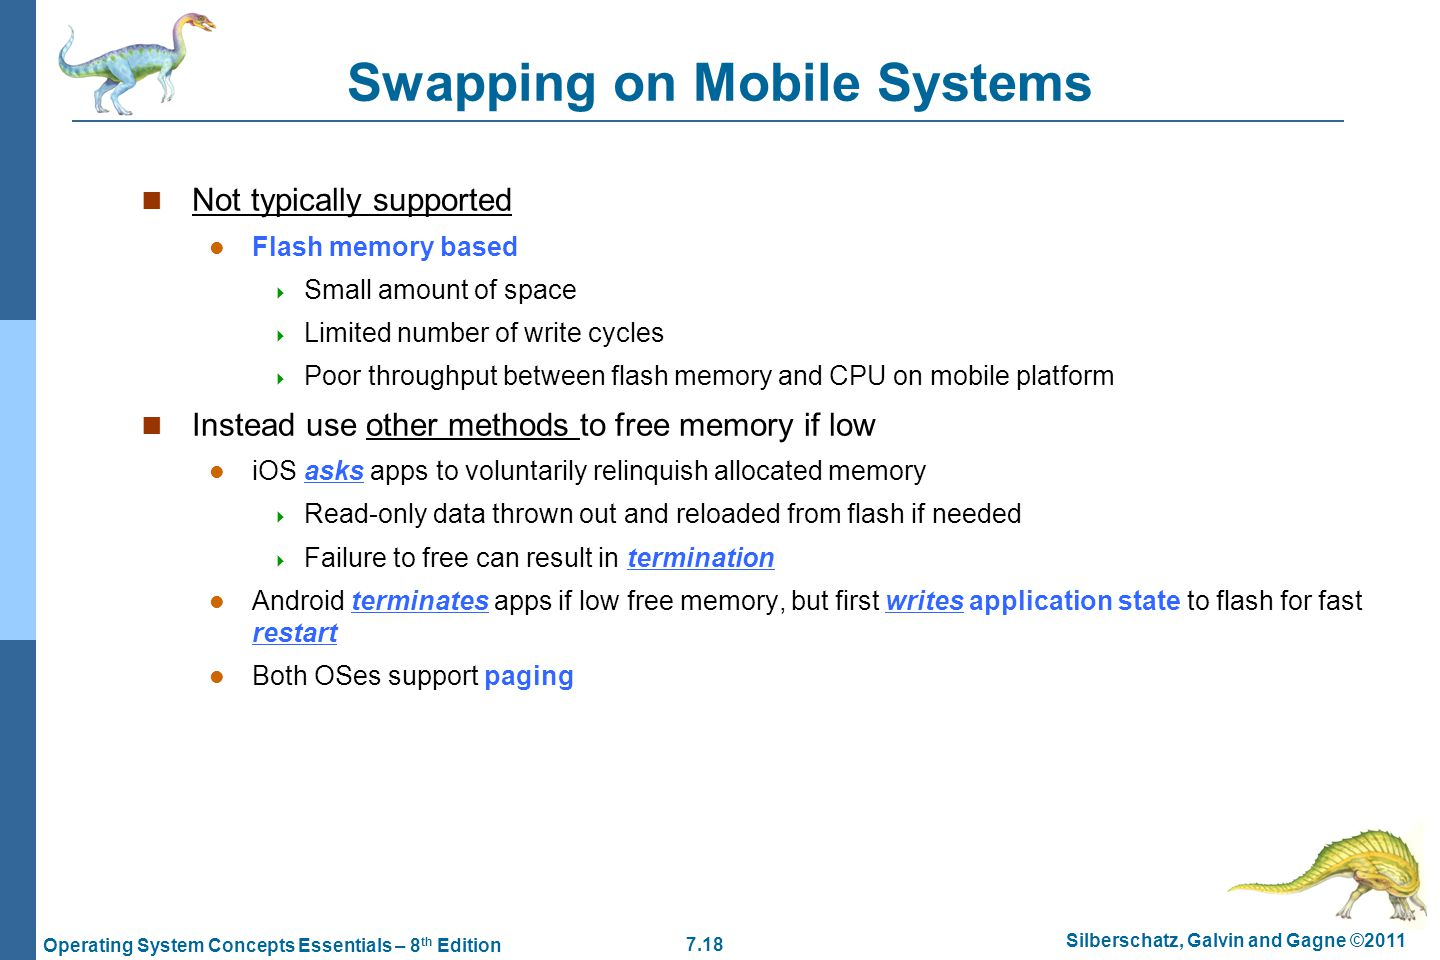 Swapping on Mobile Systems